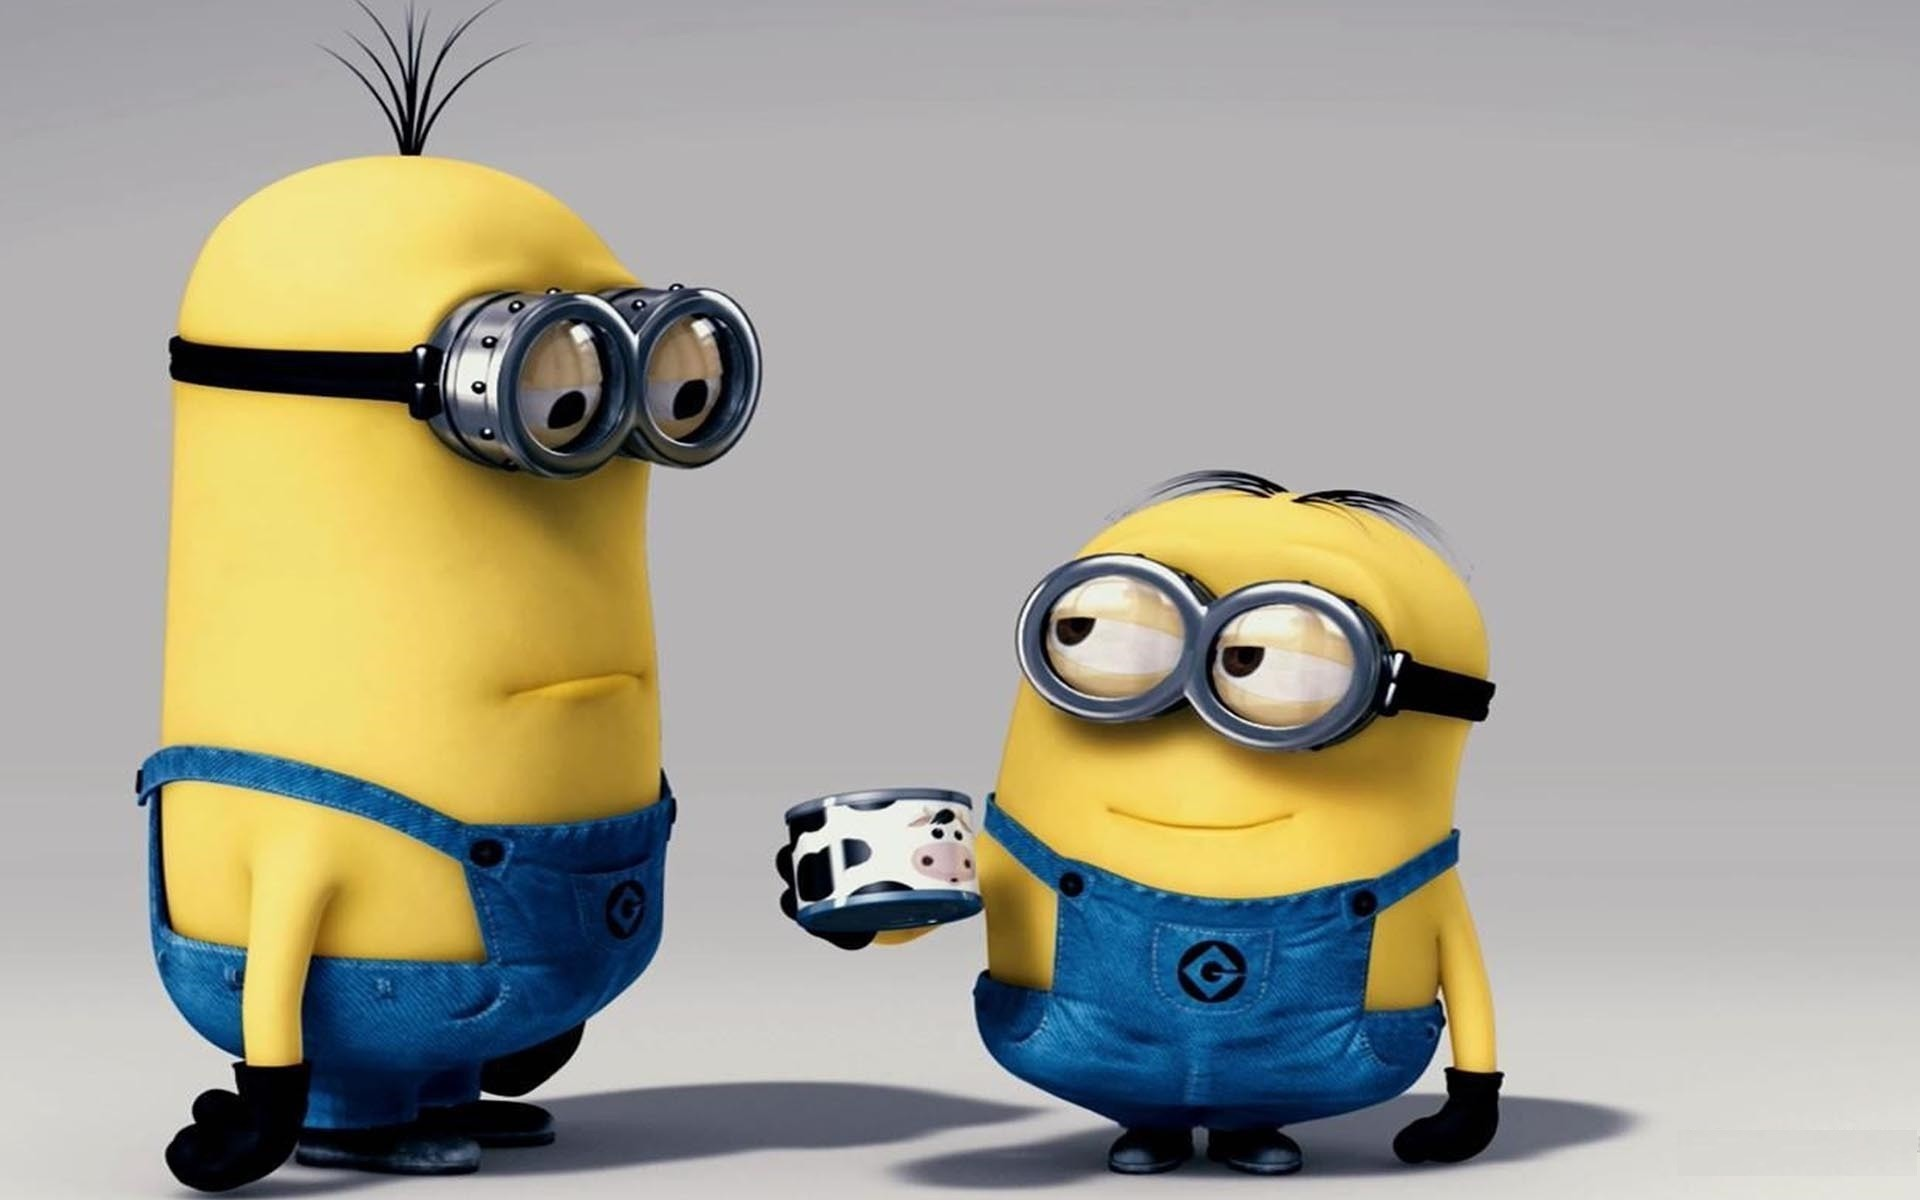 1920x1200 funny-minions-wallpaper-hd-wallpapers-funny-minions-wallpaper-